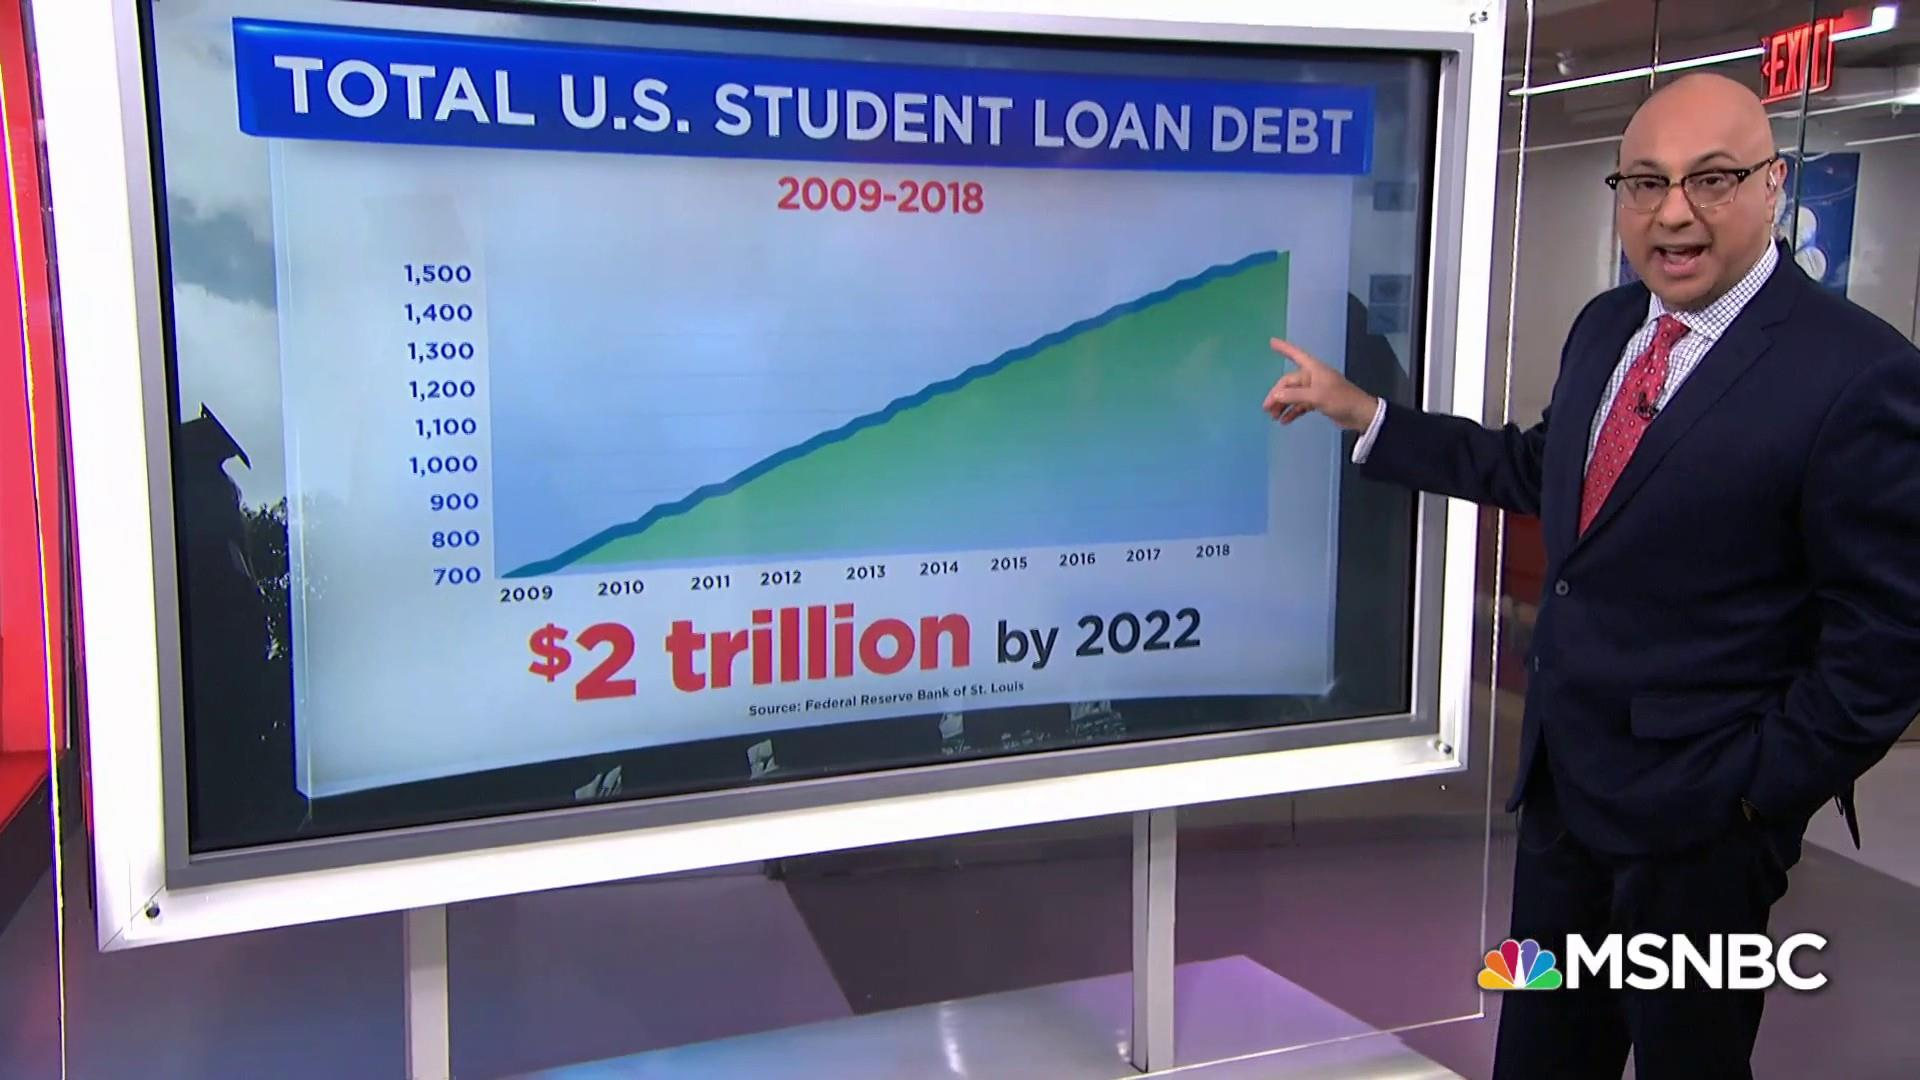 GOP plan aims to take student loan payments from paychecks